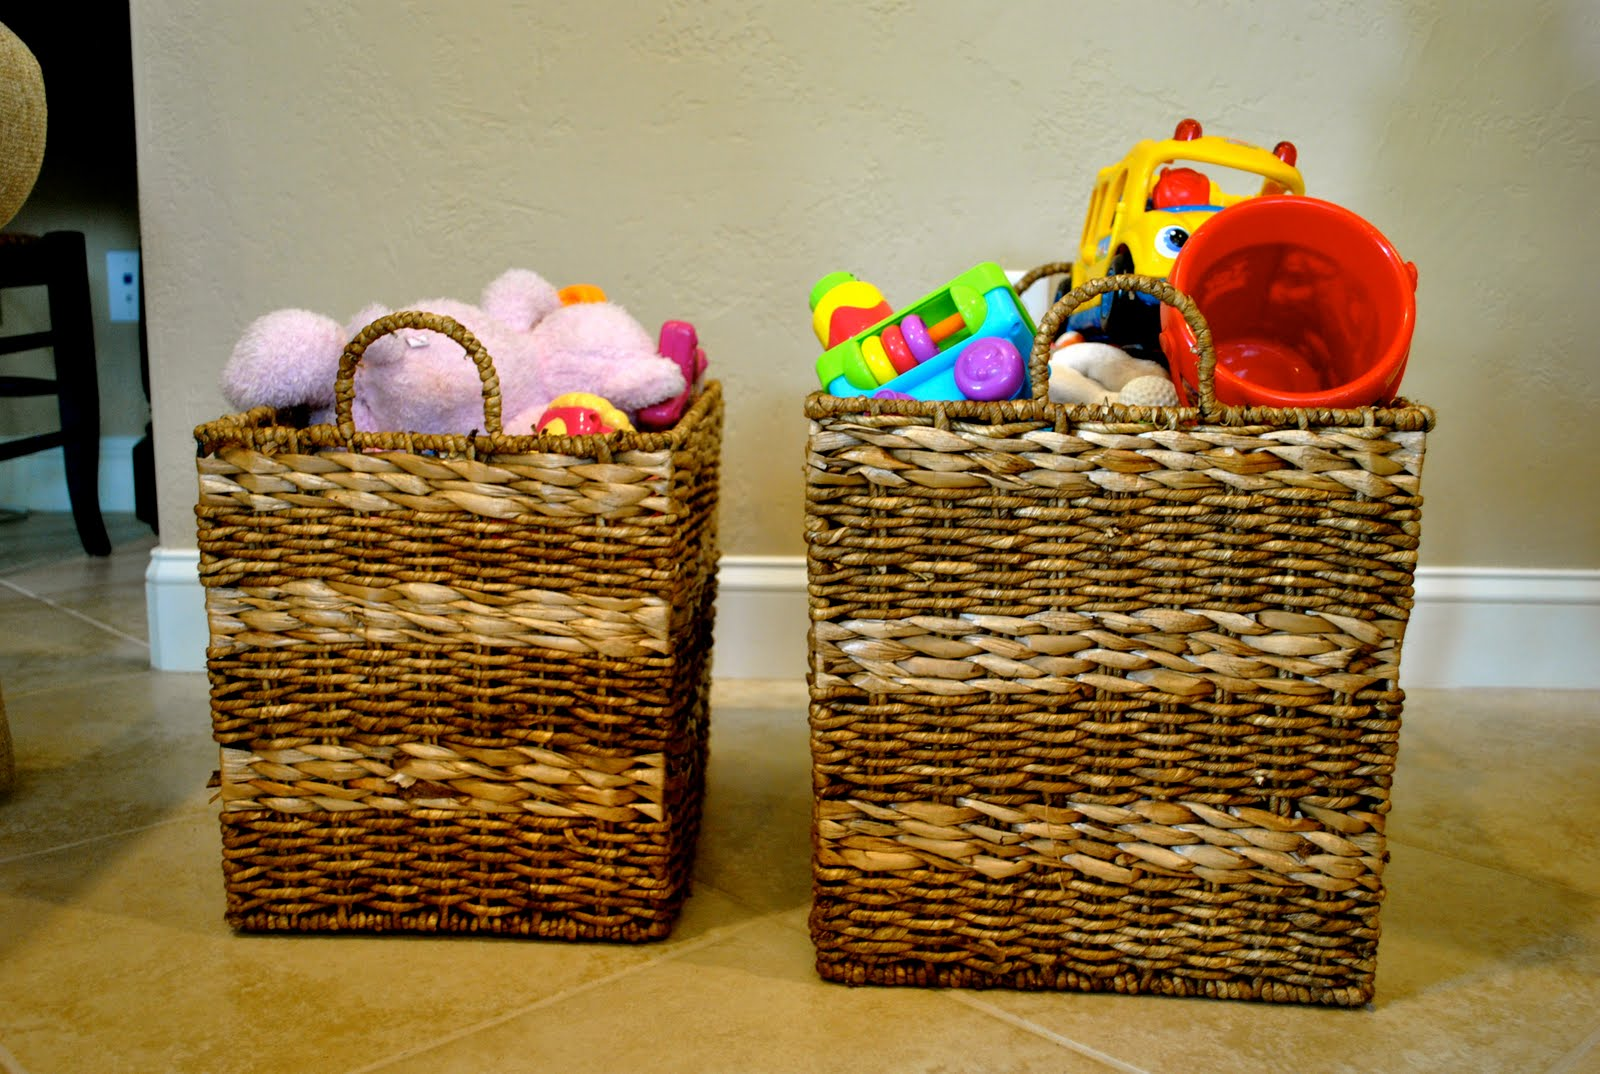 Lovely After Reorganizing My Mudroom This Week, Iu0027ve Been Looking For Other Ways  To Use Baskets Around The House. I Thought I Could Spruce Up These Toy  Baskets In ... Awesome Ideas